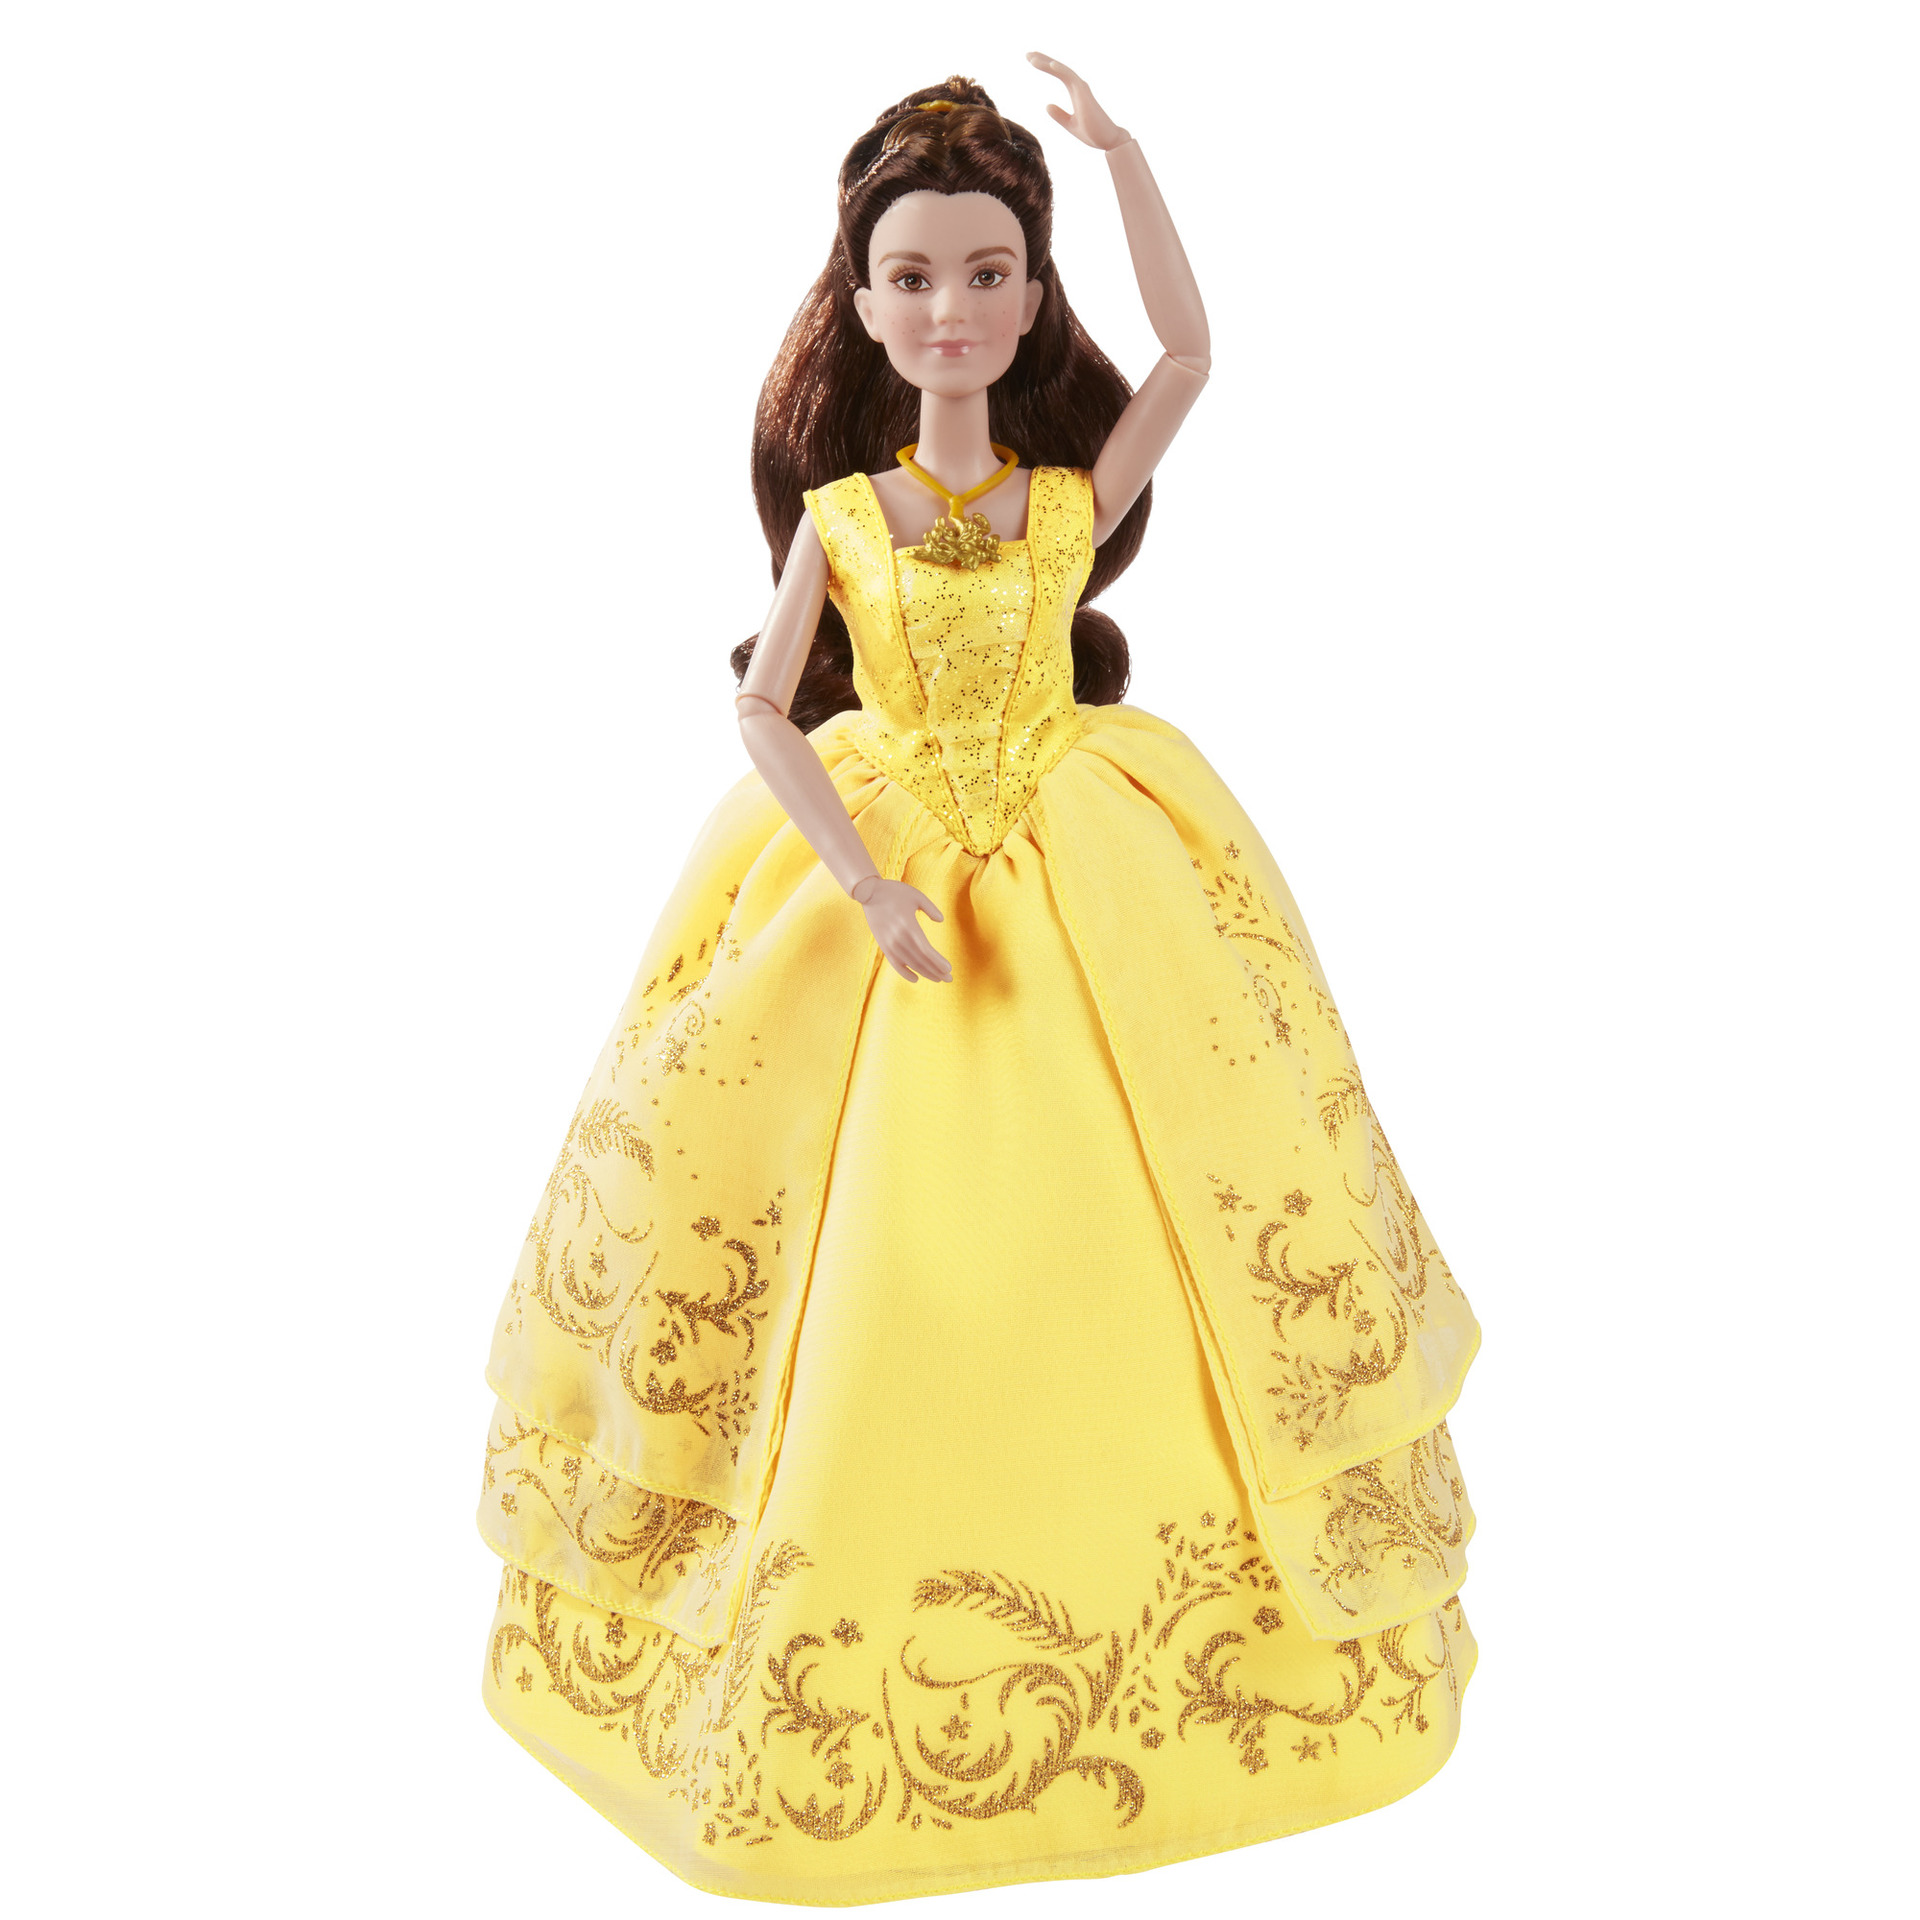 Disney Beauty and the Beast Enchanting Ball Gown Belle | HasbroToyShop